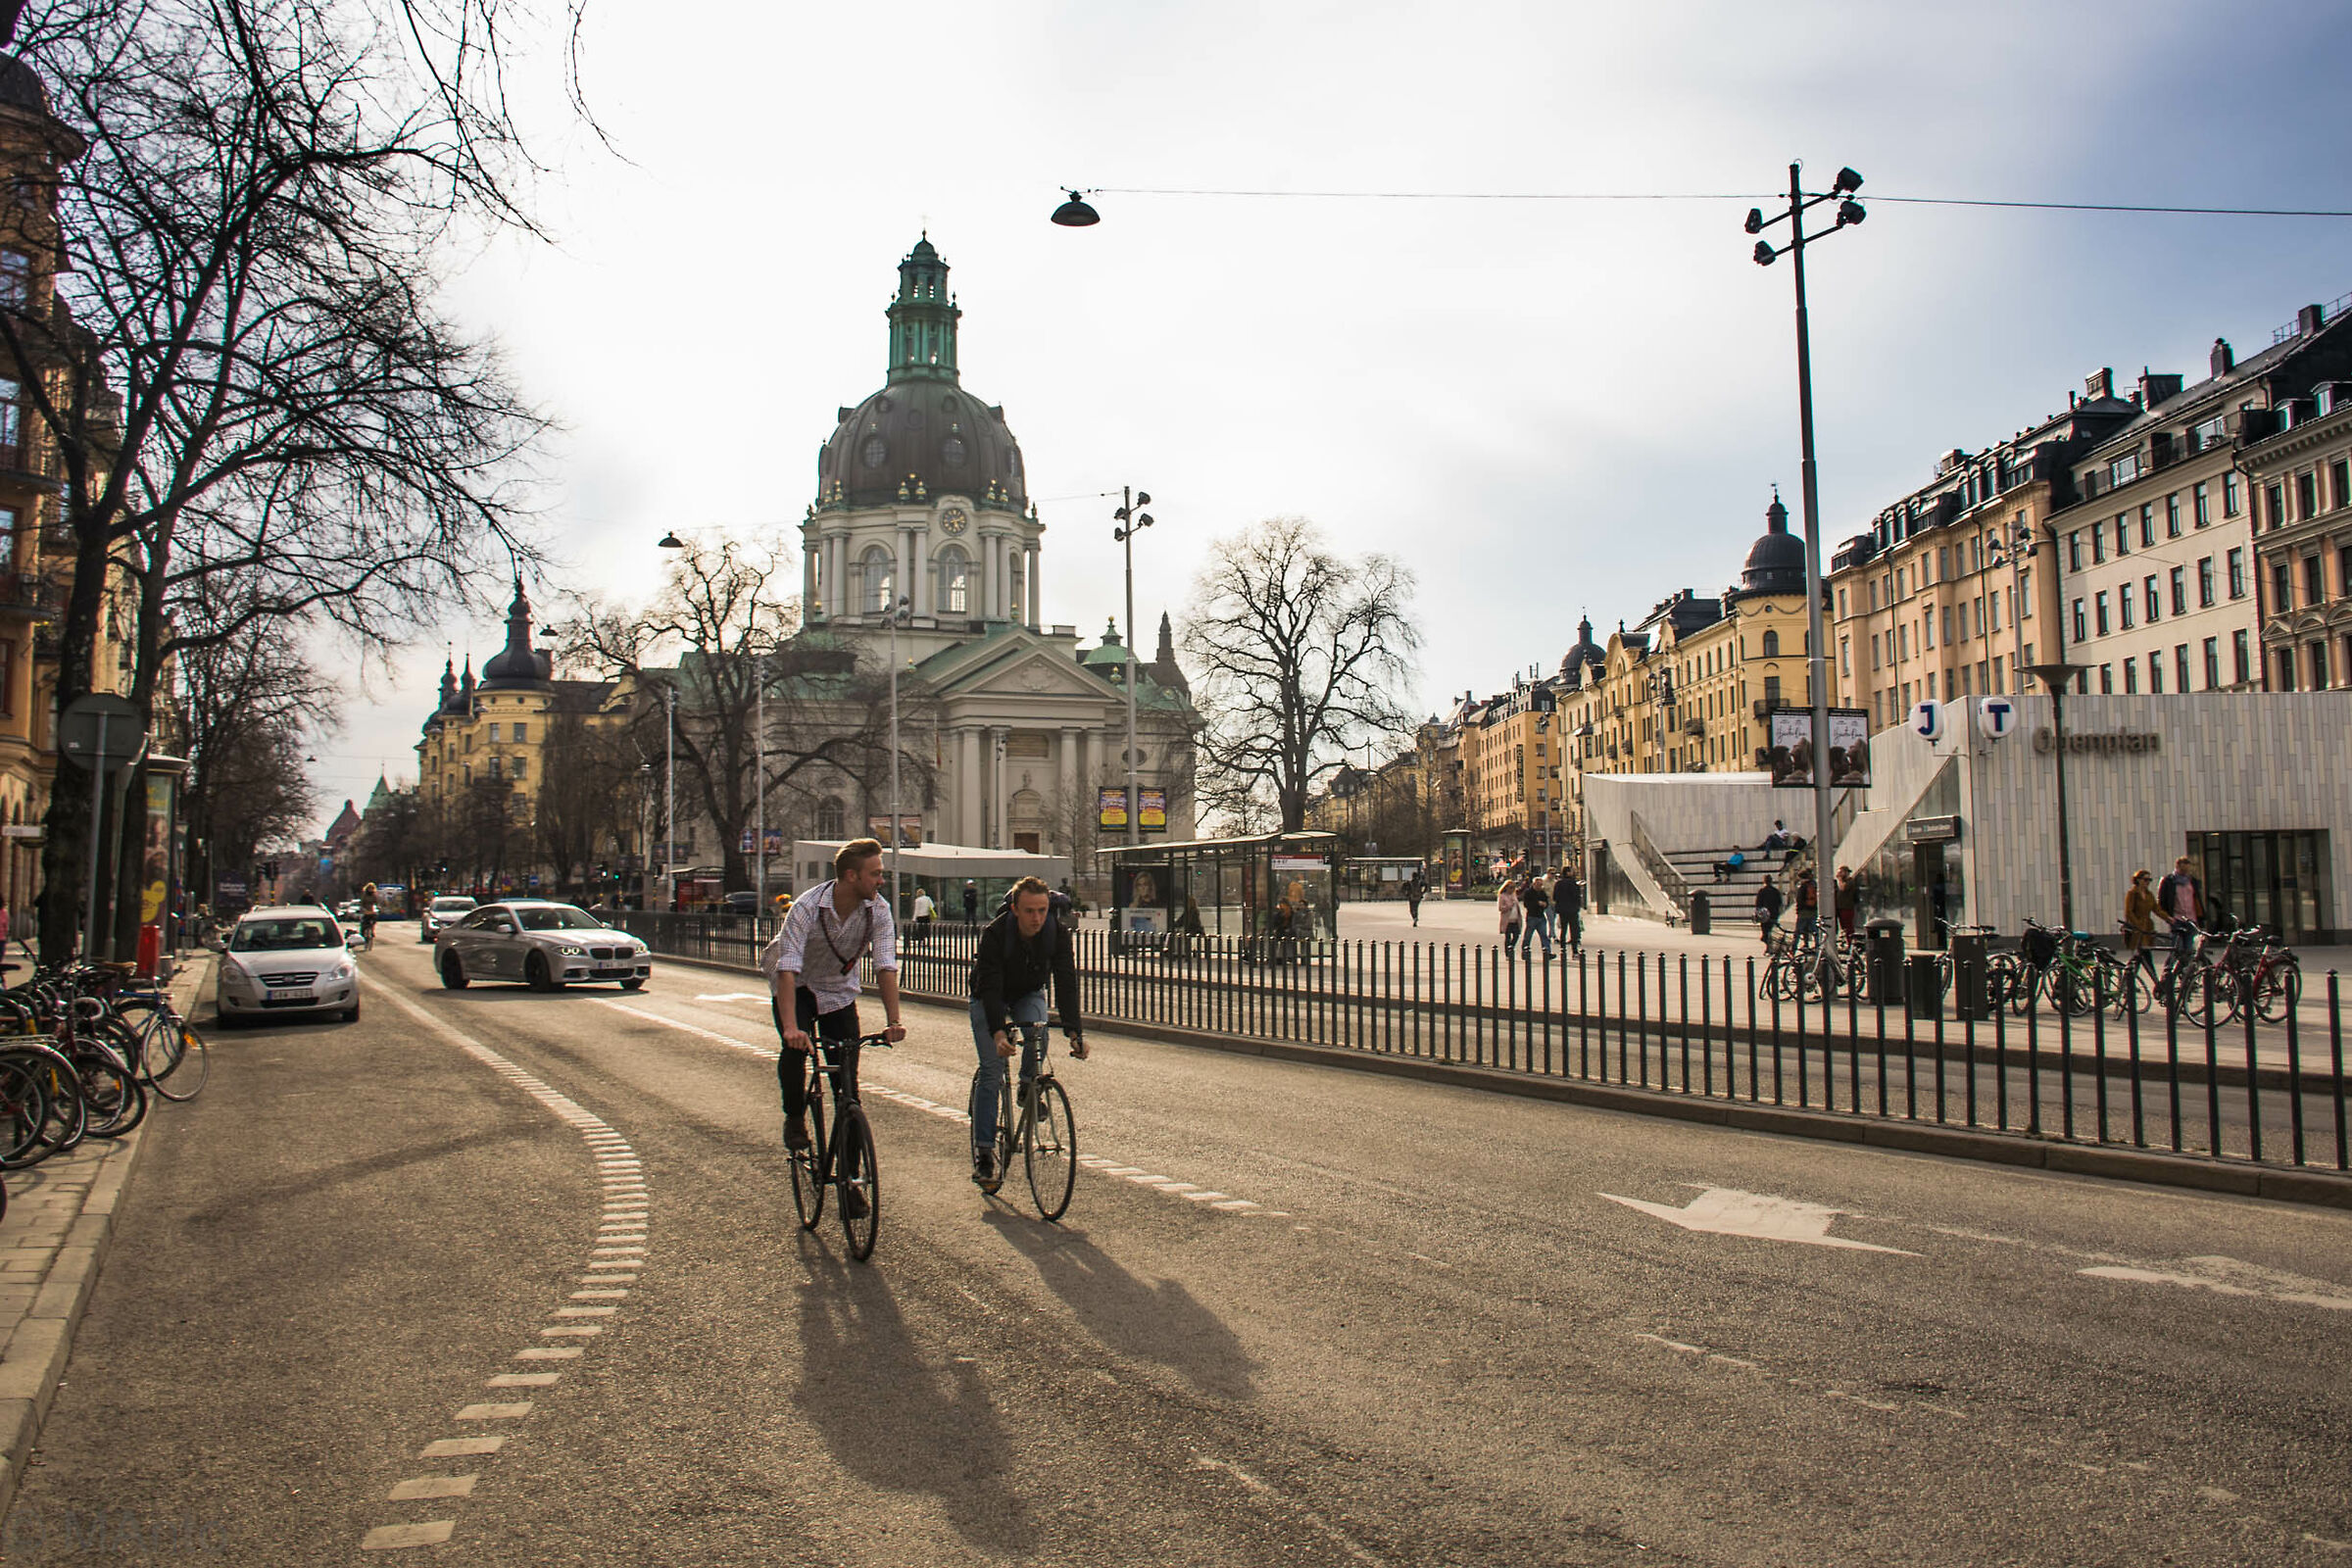 Cycling in the city...